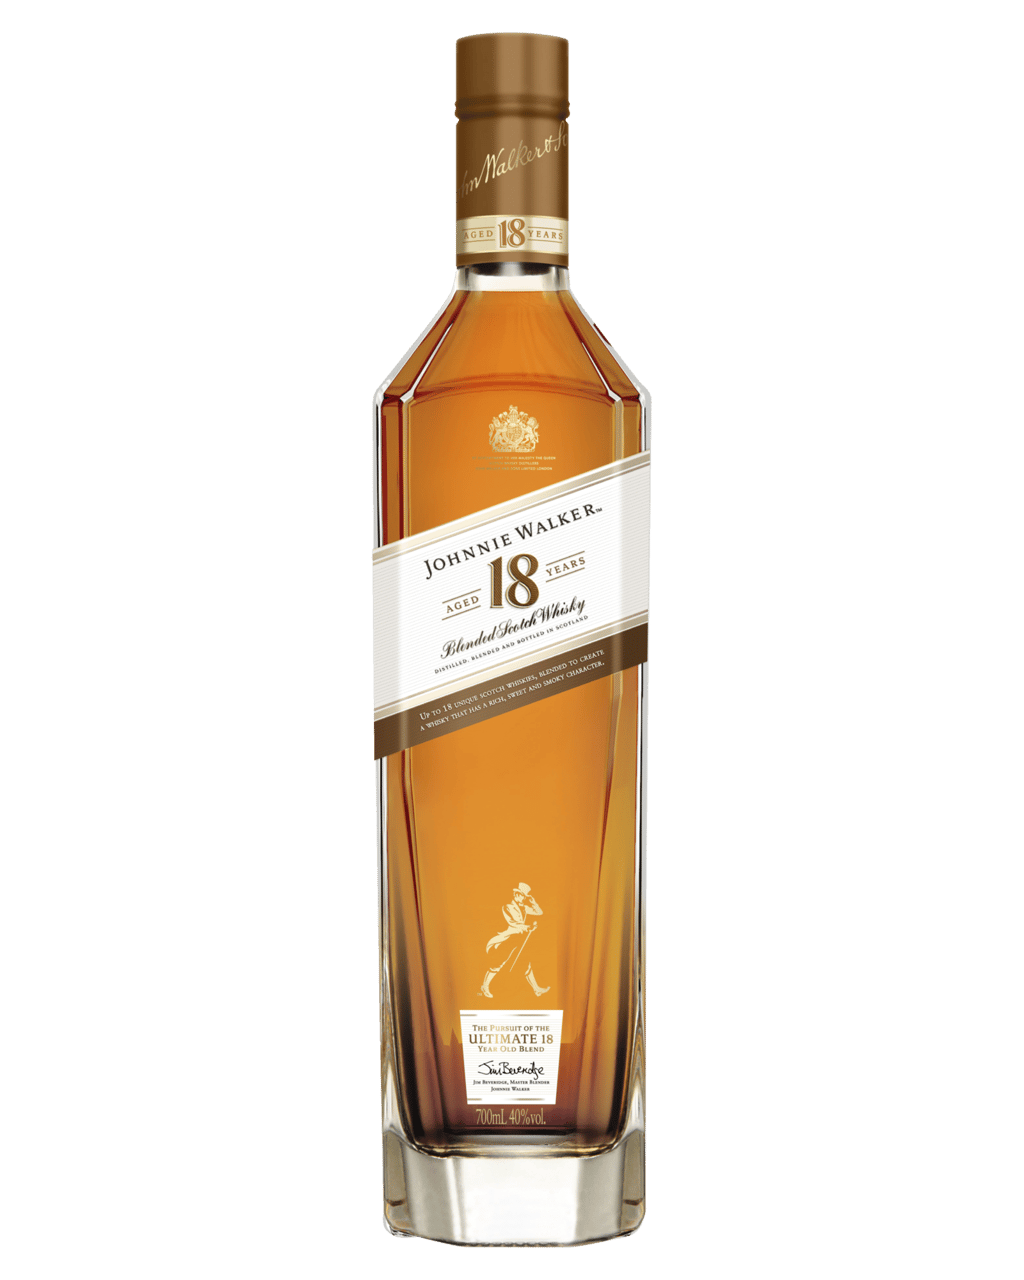 Buy Johnnie Walker 18 Year Old Blended Scotch Whisky 700ml